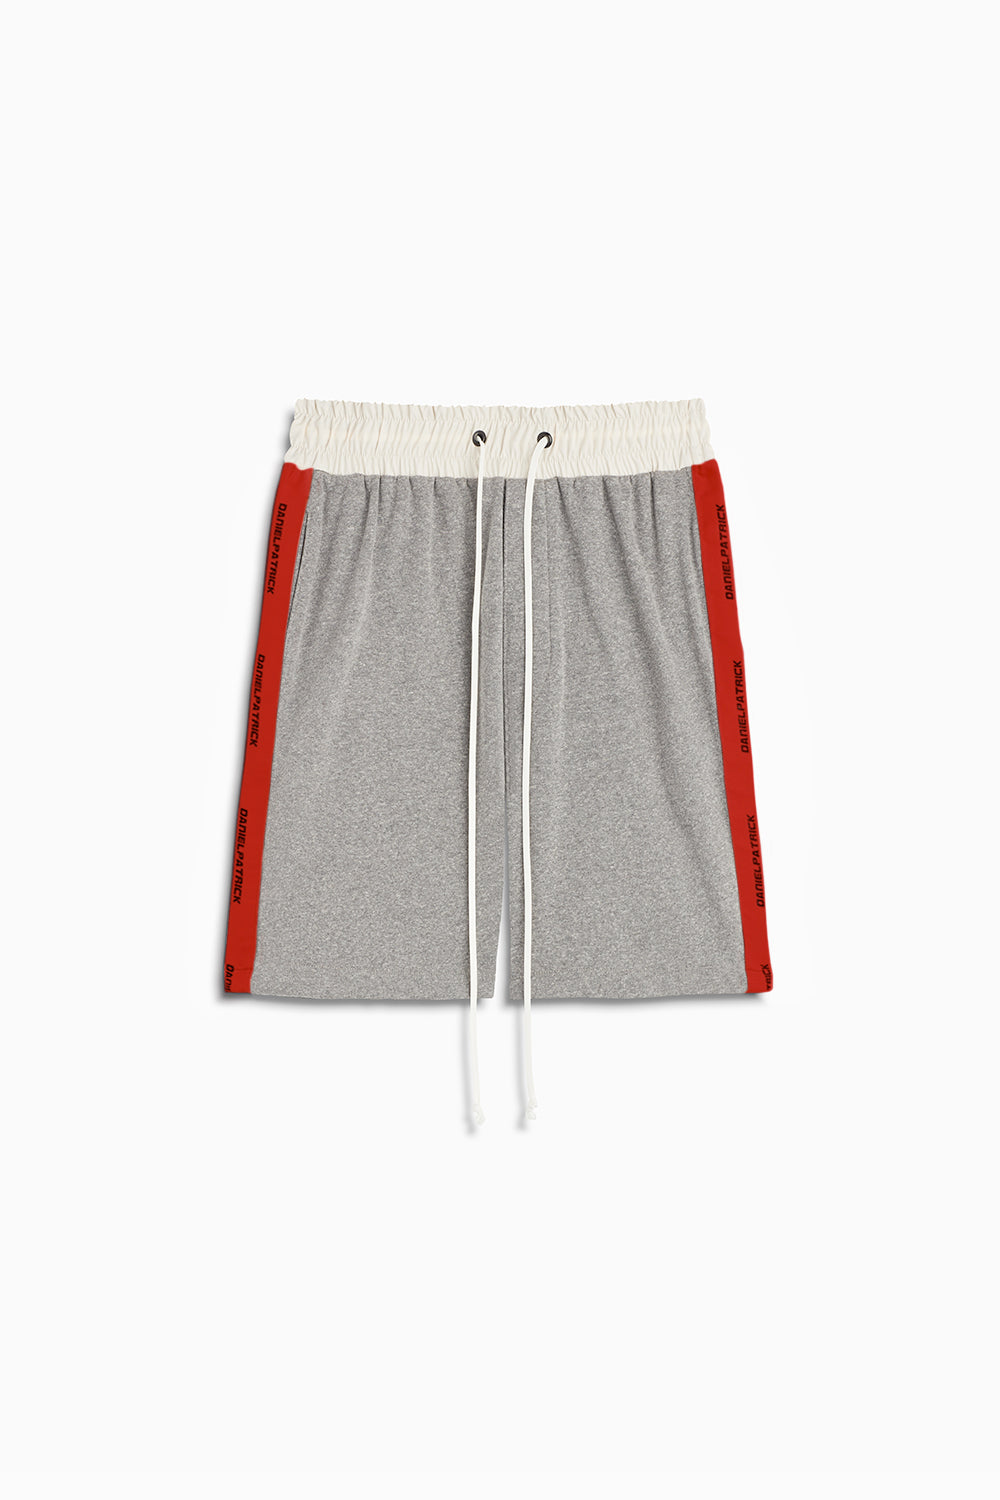 loop terry gym short in heather grey/red by daniel patrick